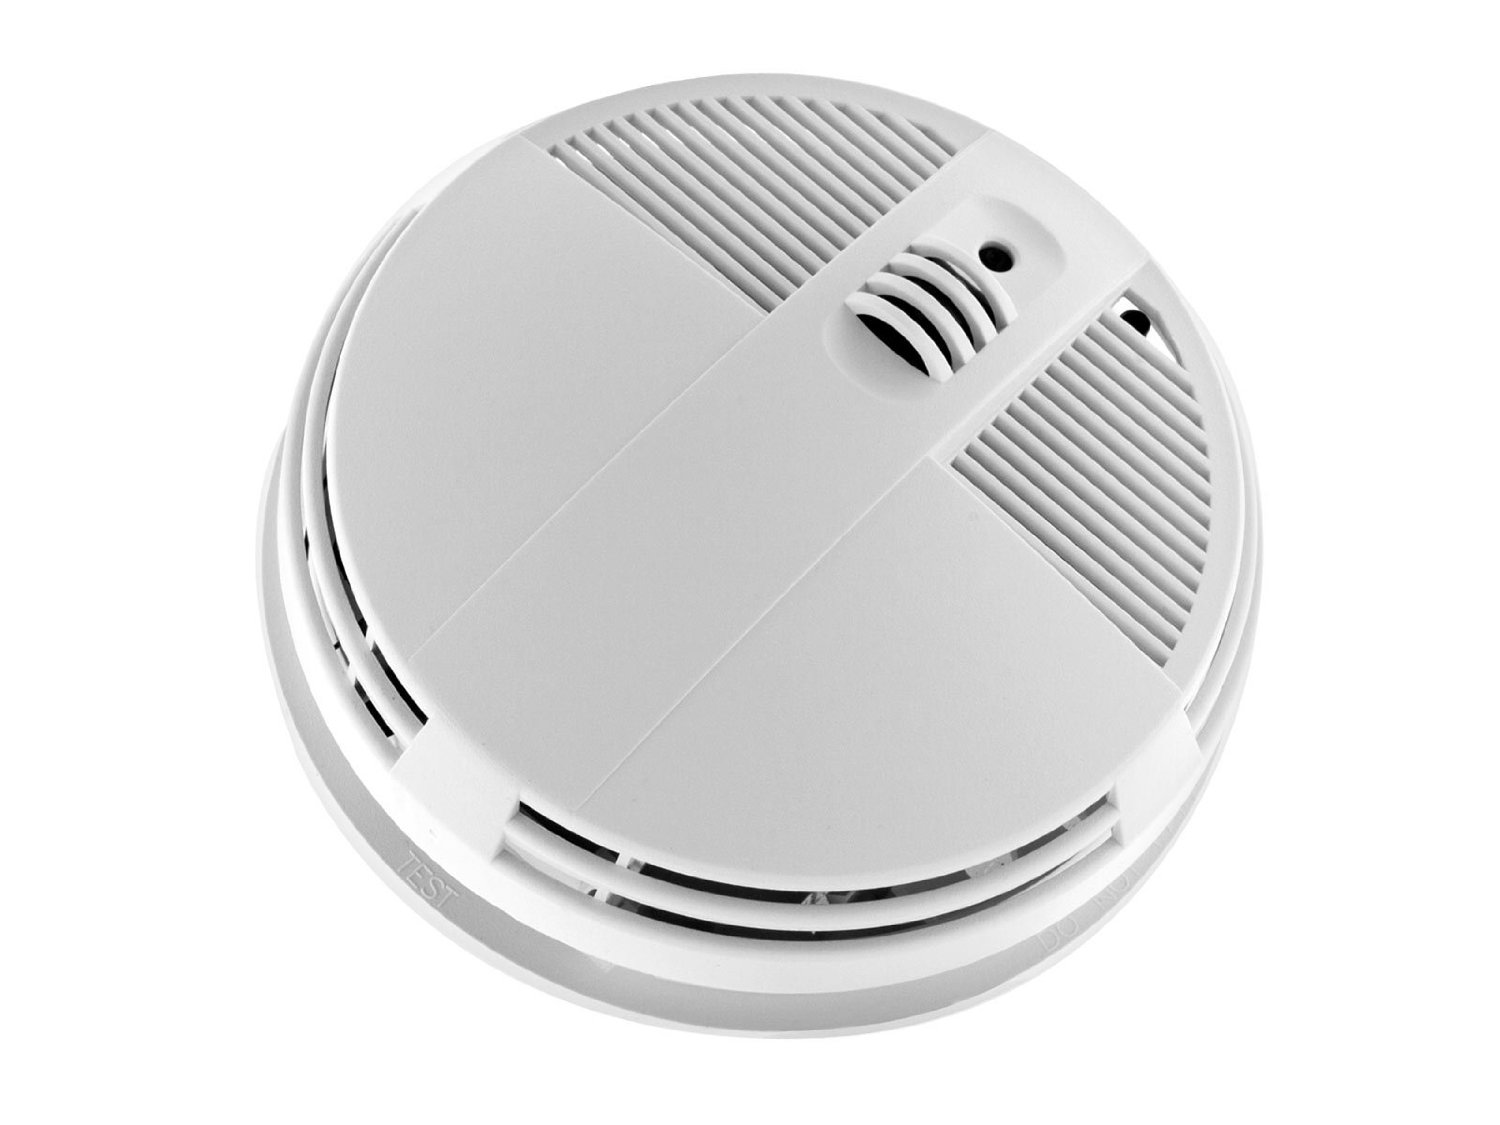 HD Infrared Smoke Detector Covert Camera (Bottom View)